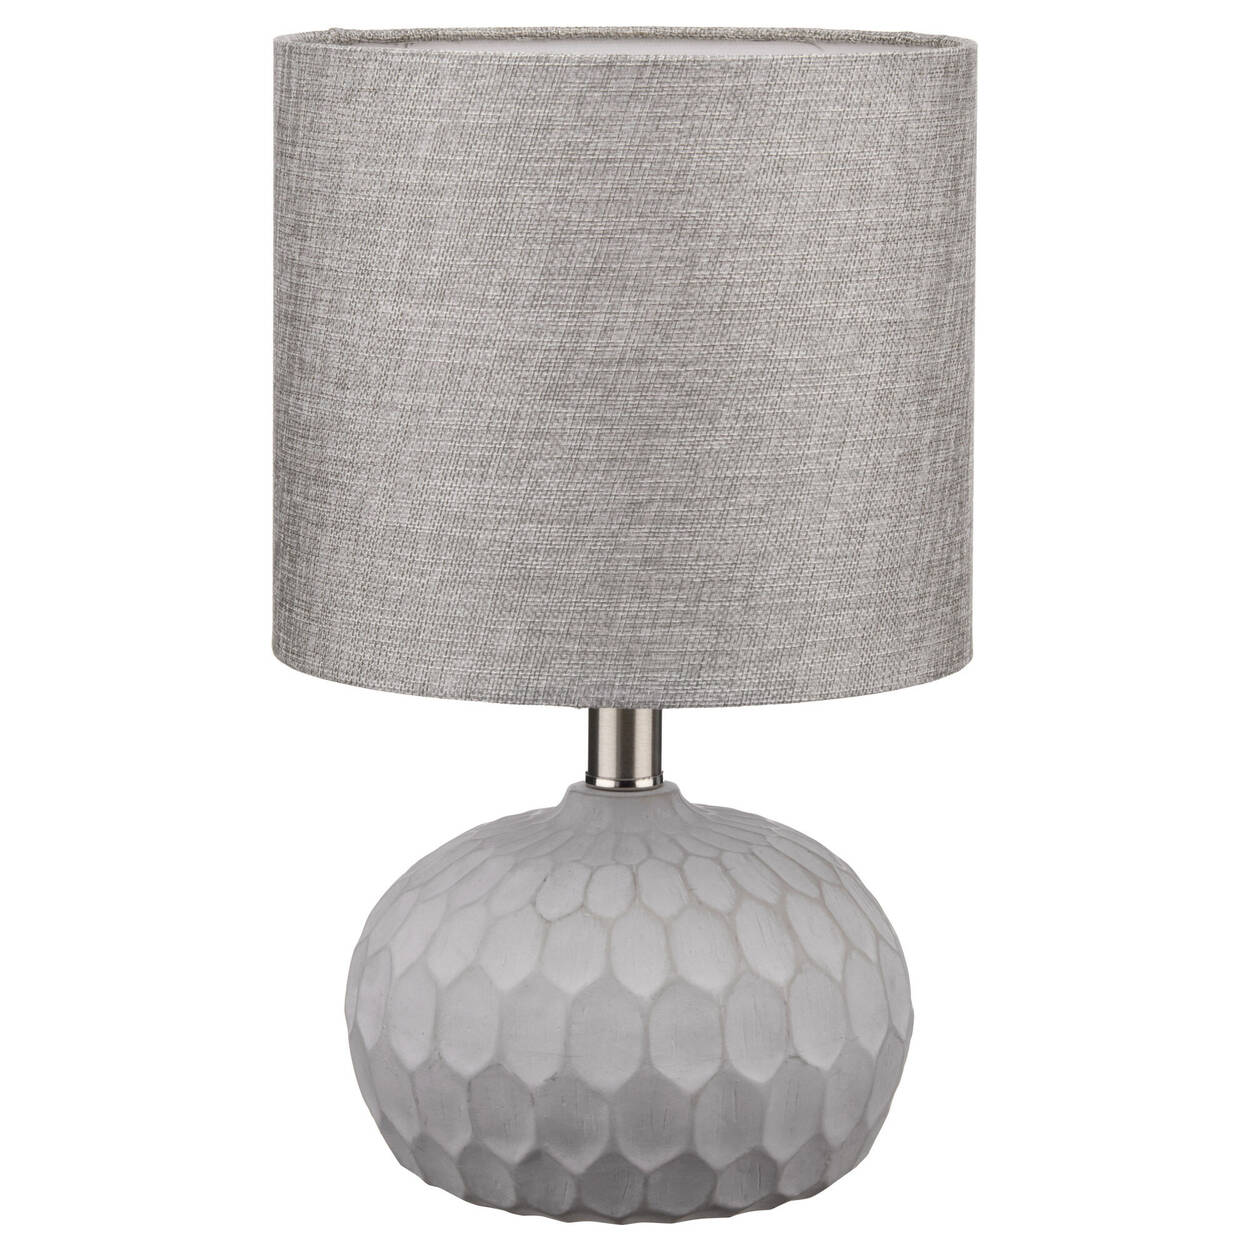 Concrete and Fabric Table Lamp